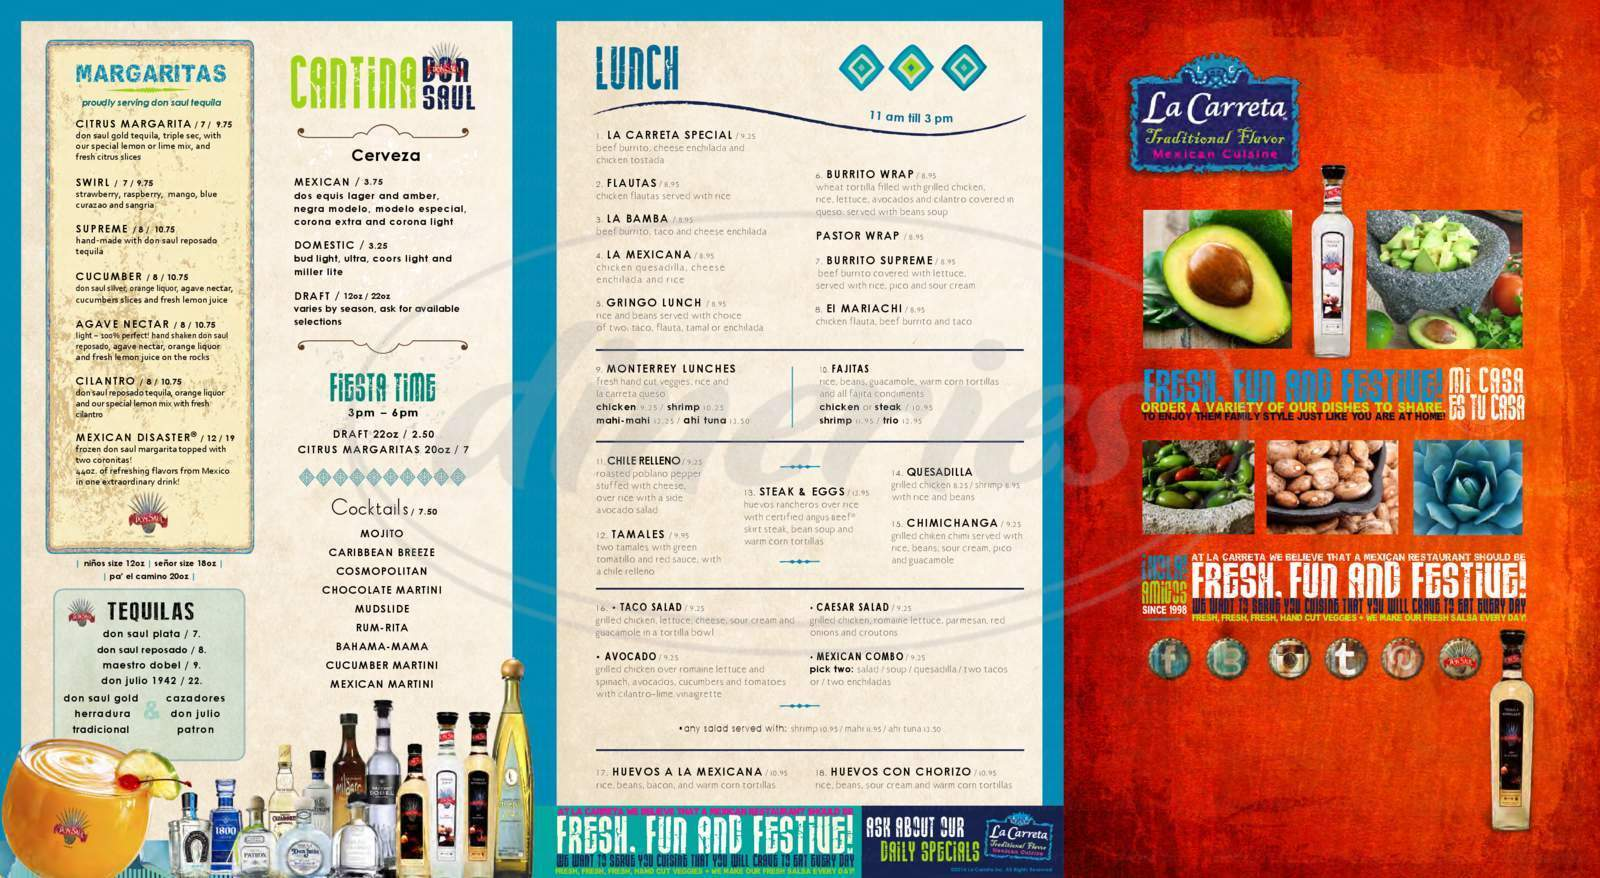 menu for La Carreta